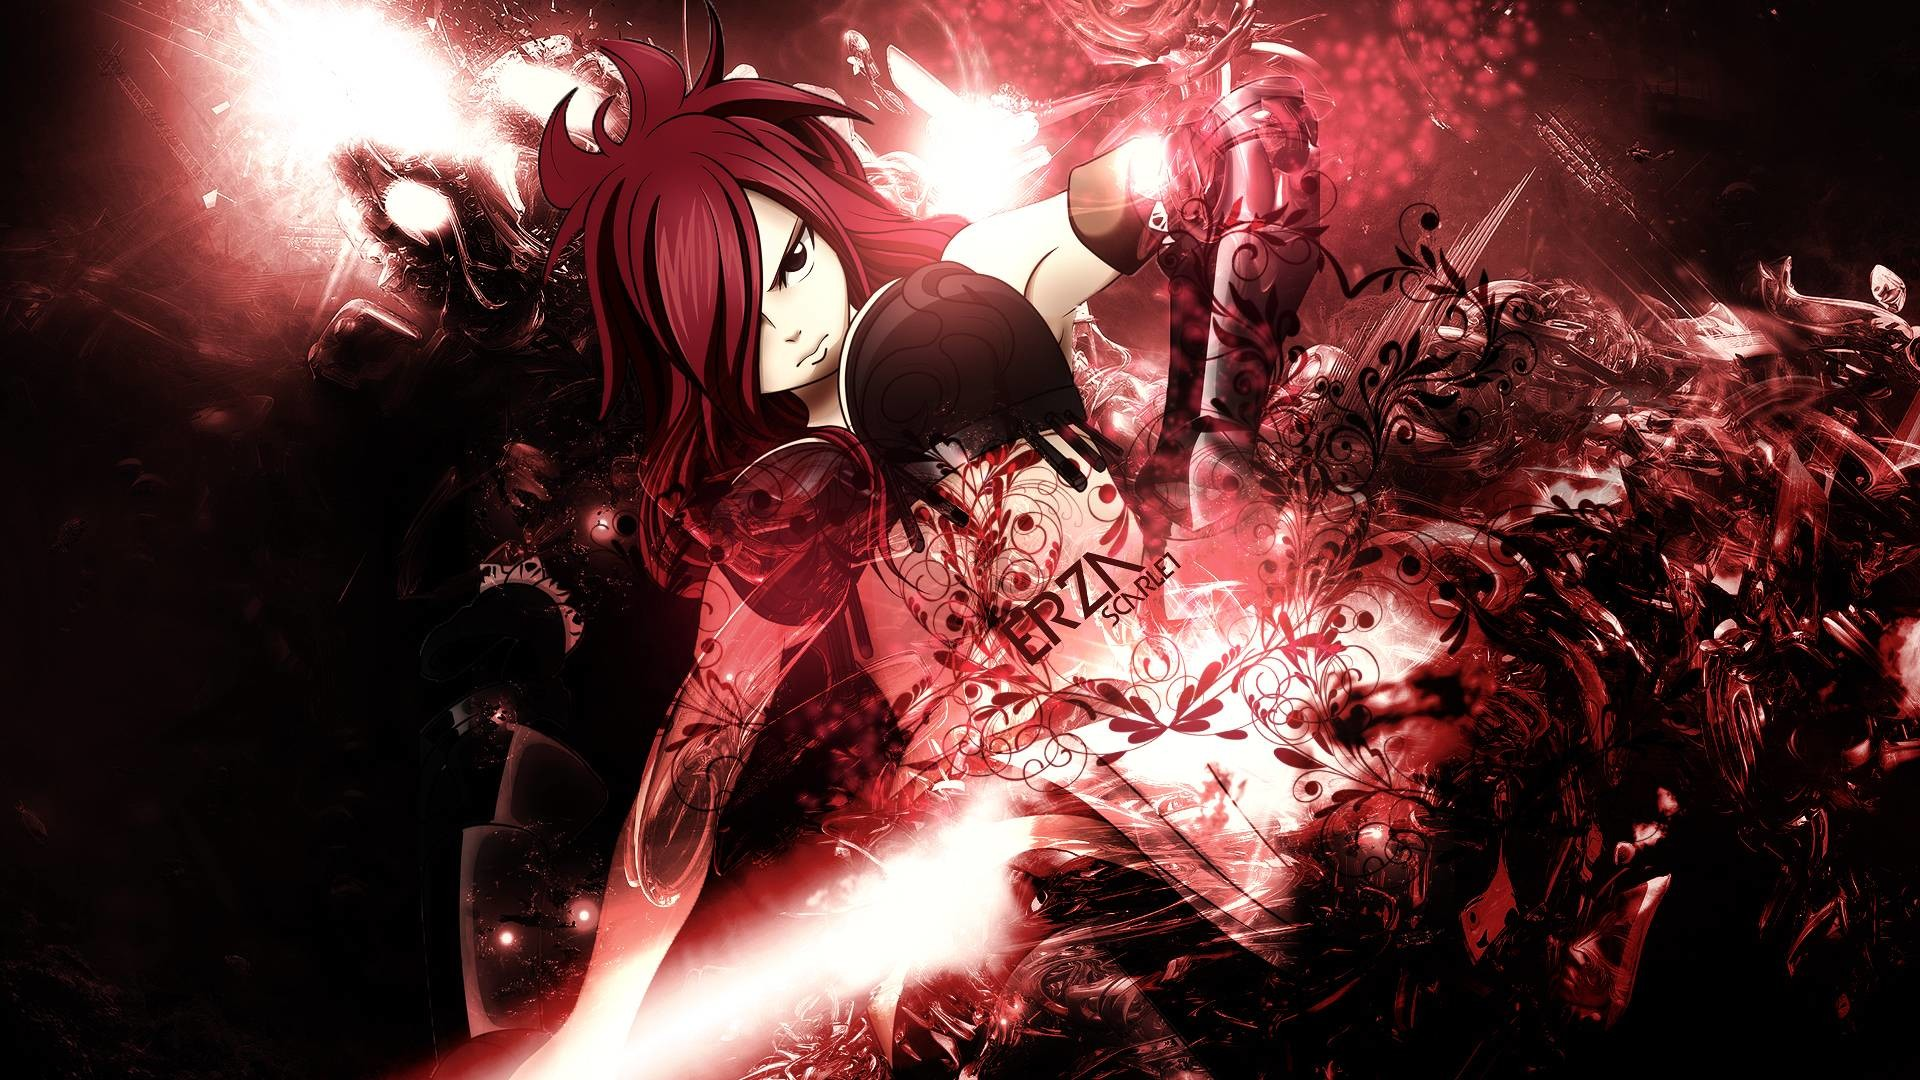 Fairy Tail Wallpaper Hd Erza Images & Pictures – Becuo